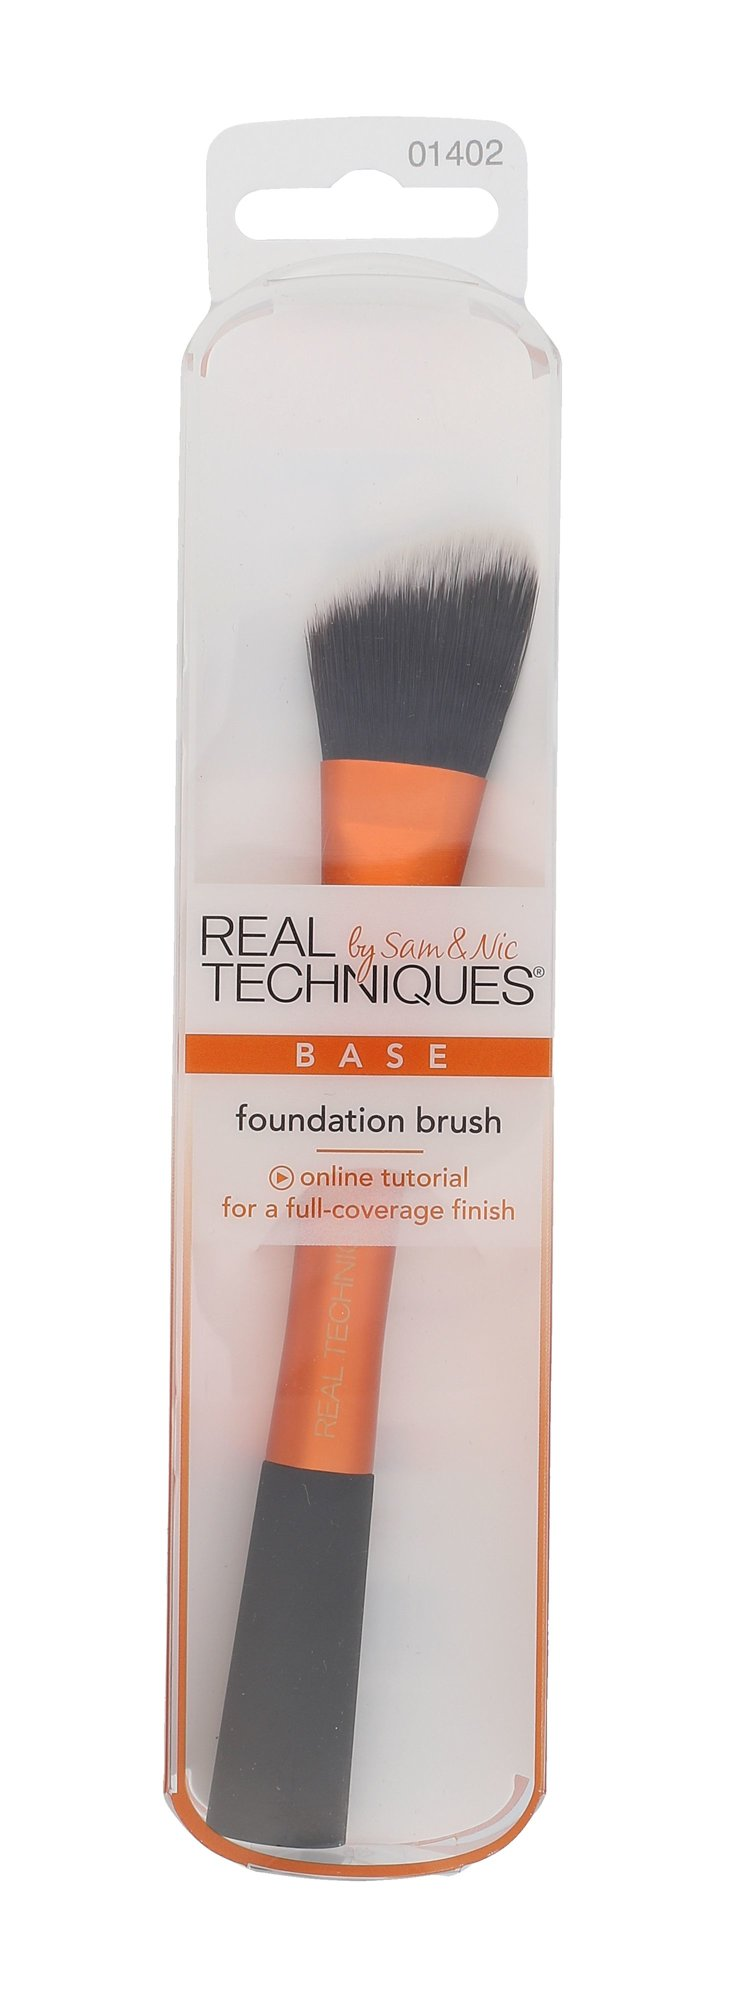 Real Techniques Brushes Cosmetic 1ml  Base